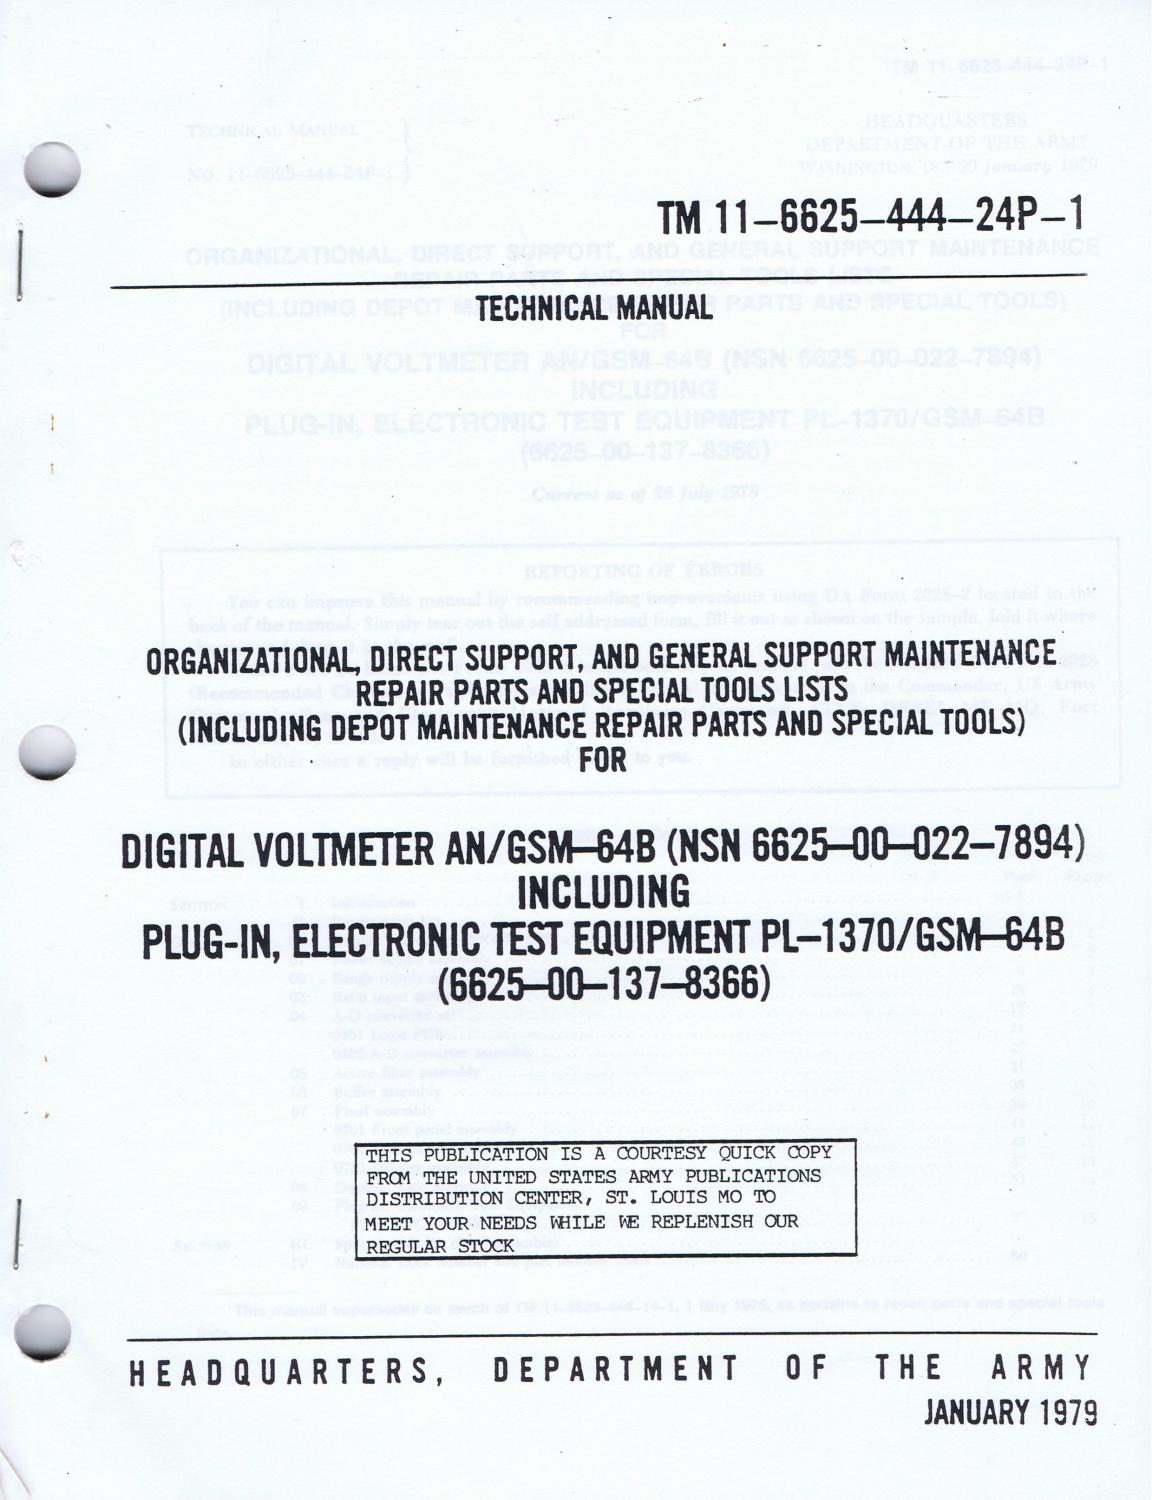 u s army technical manual tm 11 6625 444 24p 1 digital voltmeter rh abebooks com Military Electronic Technical Manual army electonic technical manuals